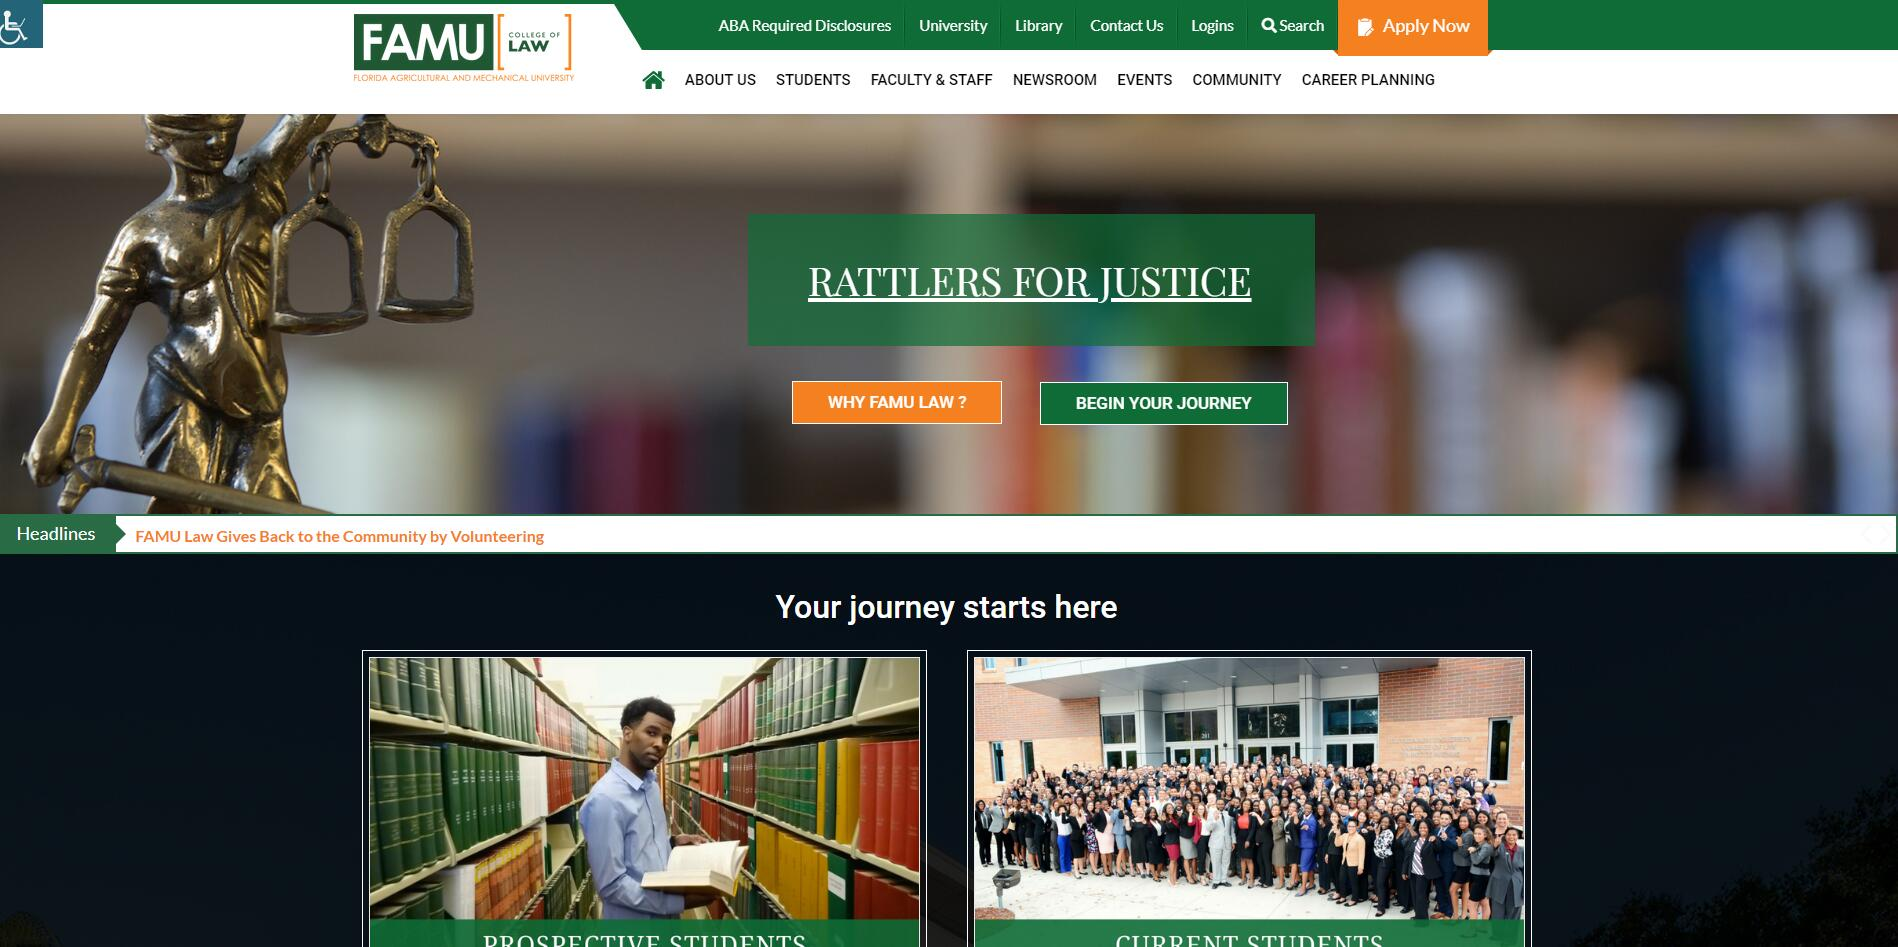 The College of Law at Florida A&M University